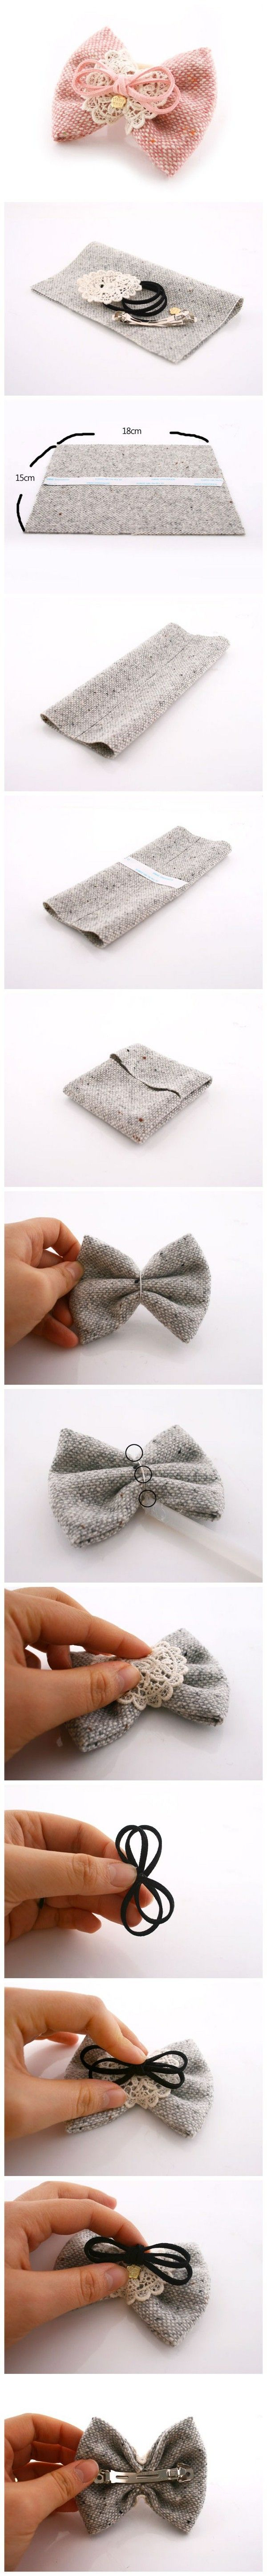 Hecho a mano Coreano::Hand crafted in Korea. Lovely little burlap bow with embellishments.